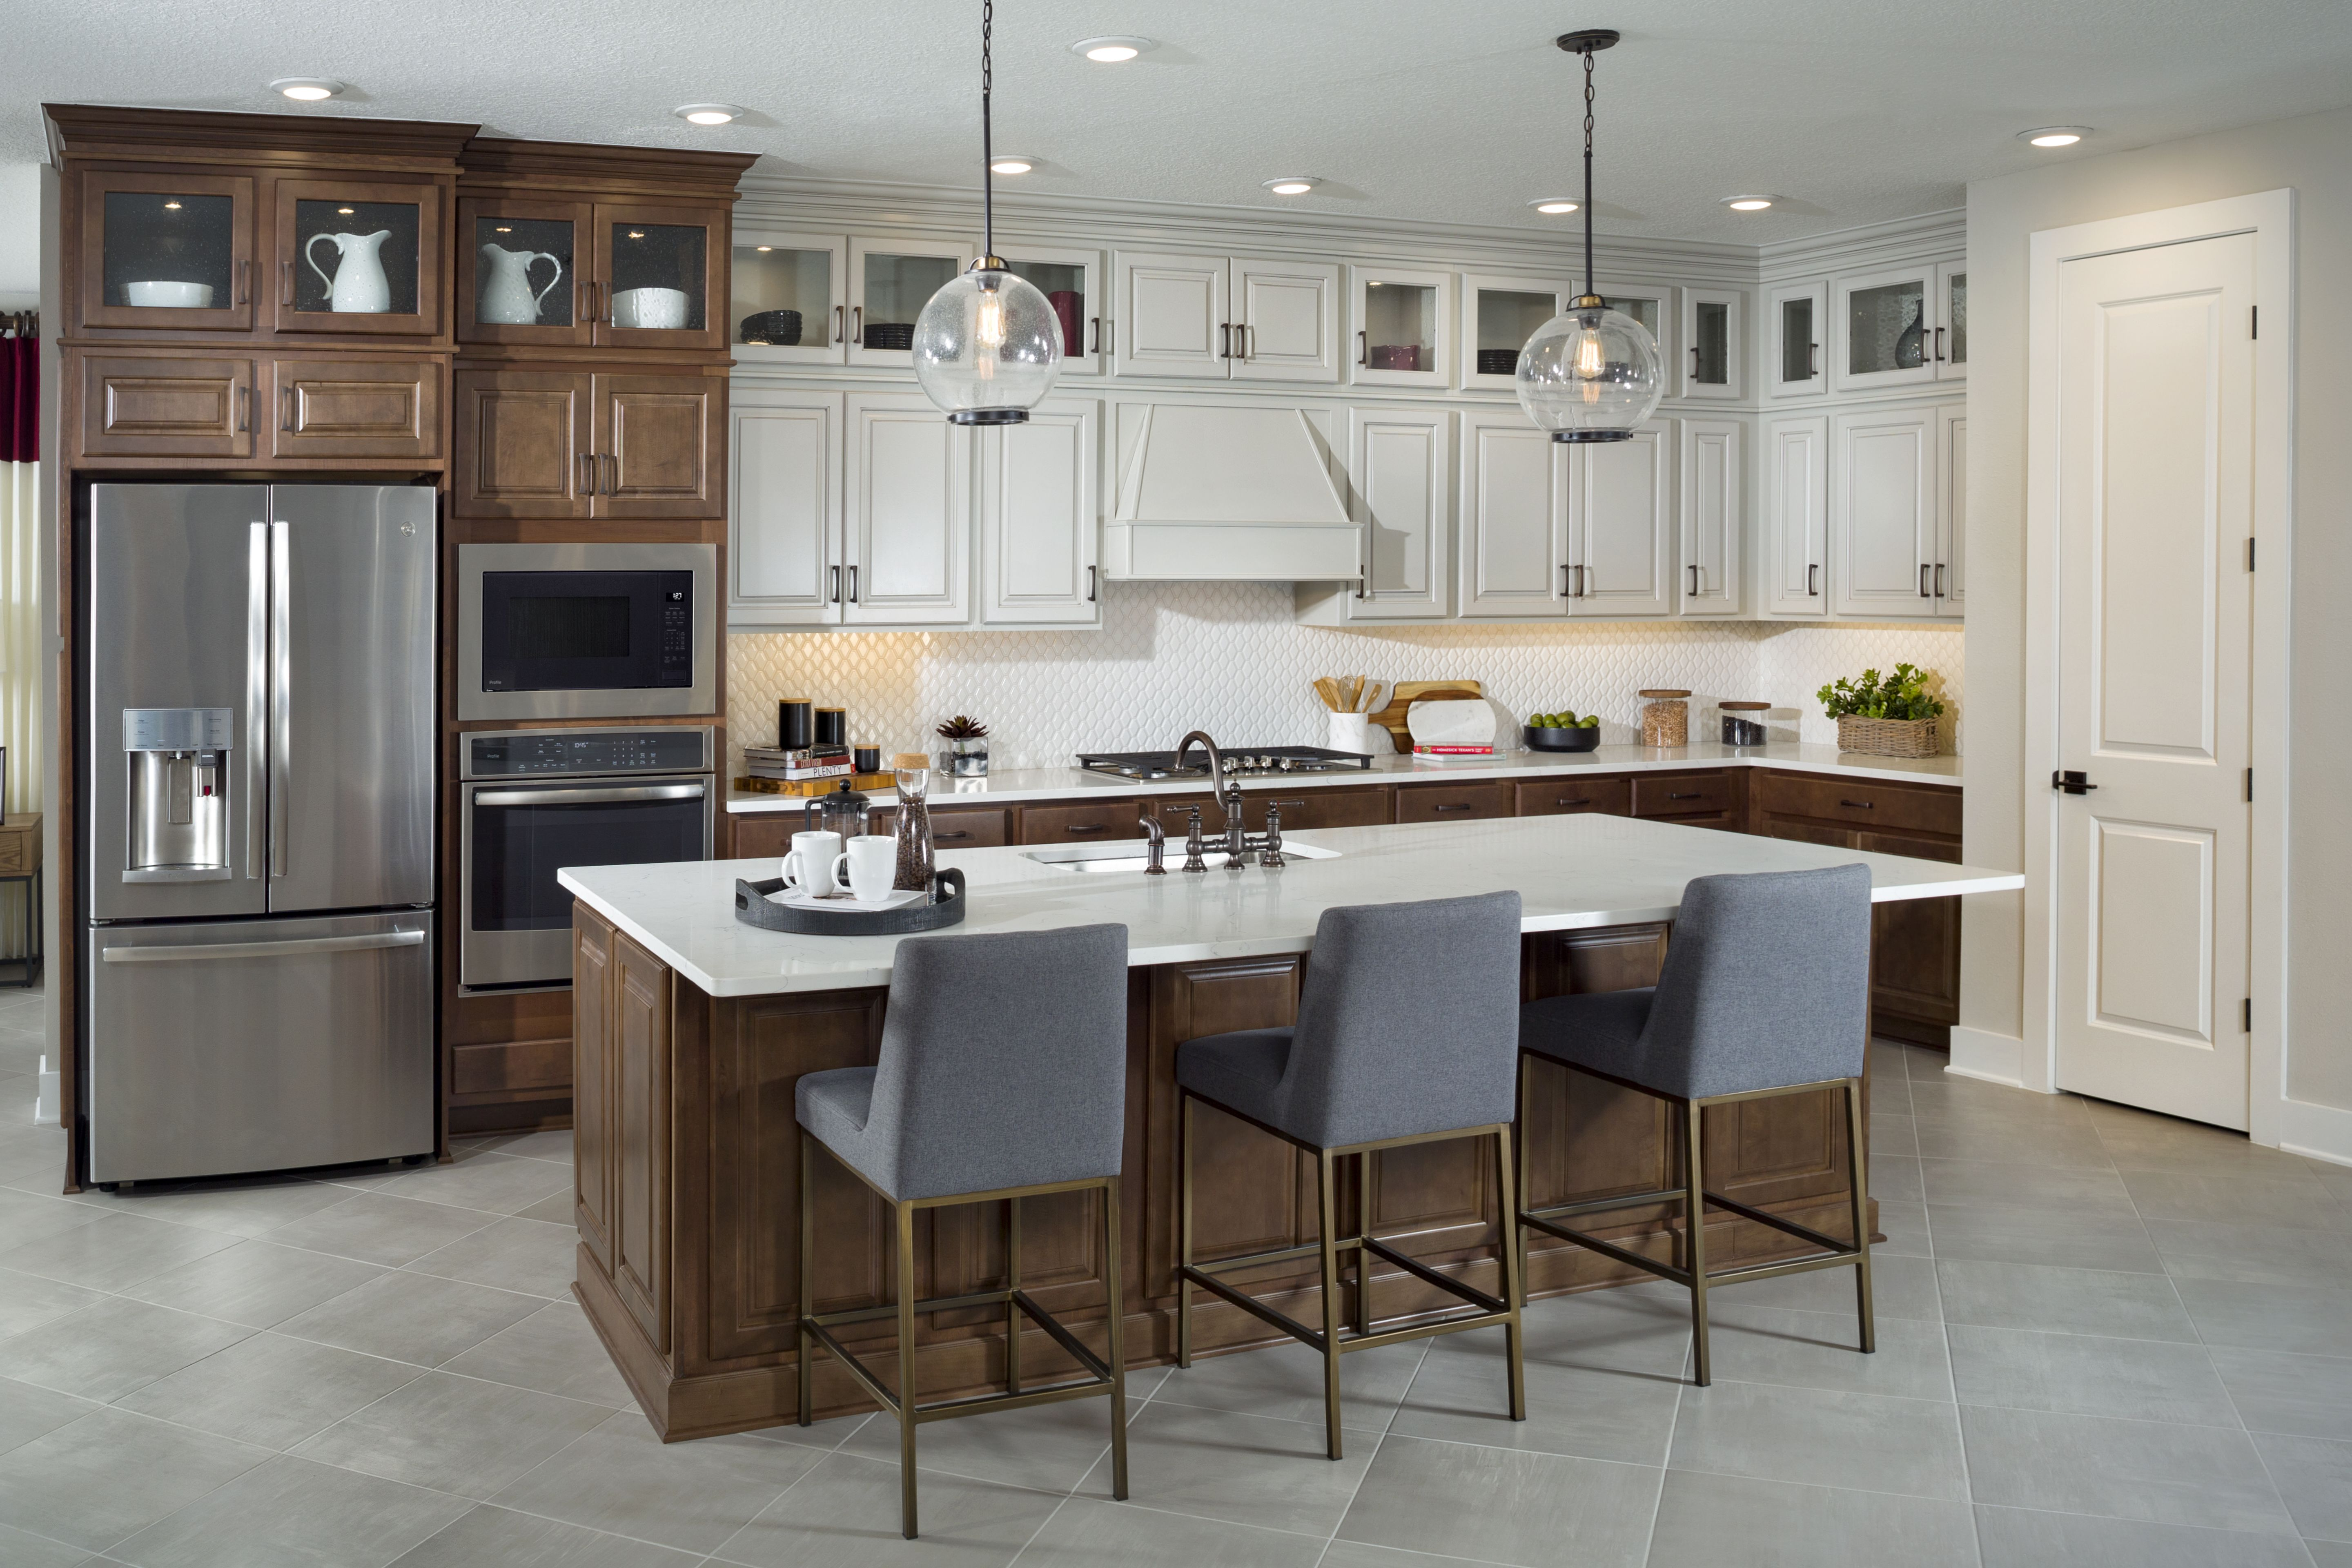 Make Your Kitchen Stand Out By Using Contrasting Dark And White Cabinets Brown Cabinets Home Kitchen Design